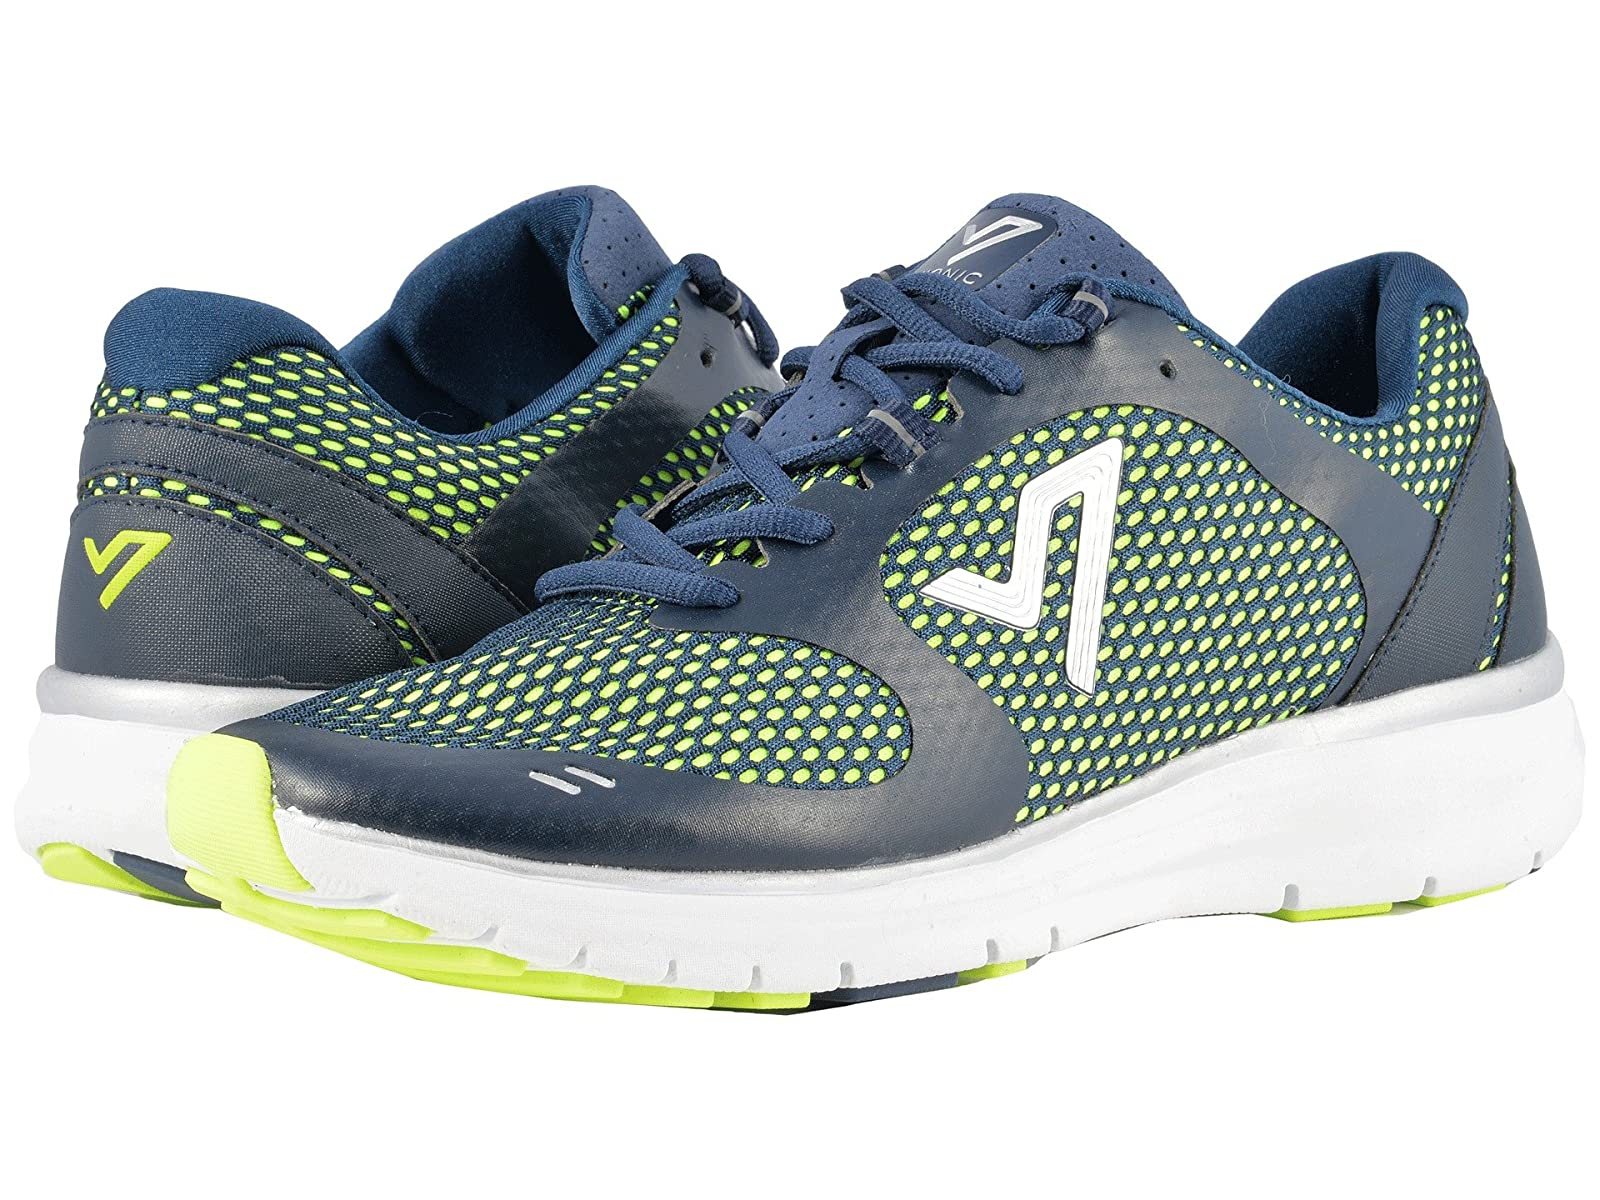 VIONIC Ngage 1Cheap and distinctive eye-catching shoes